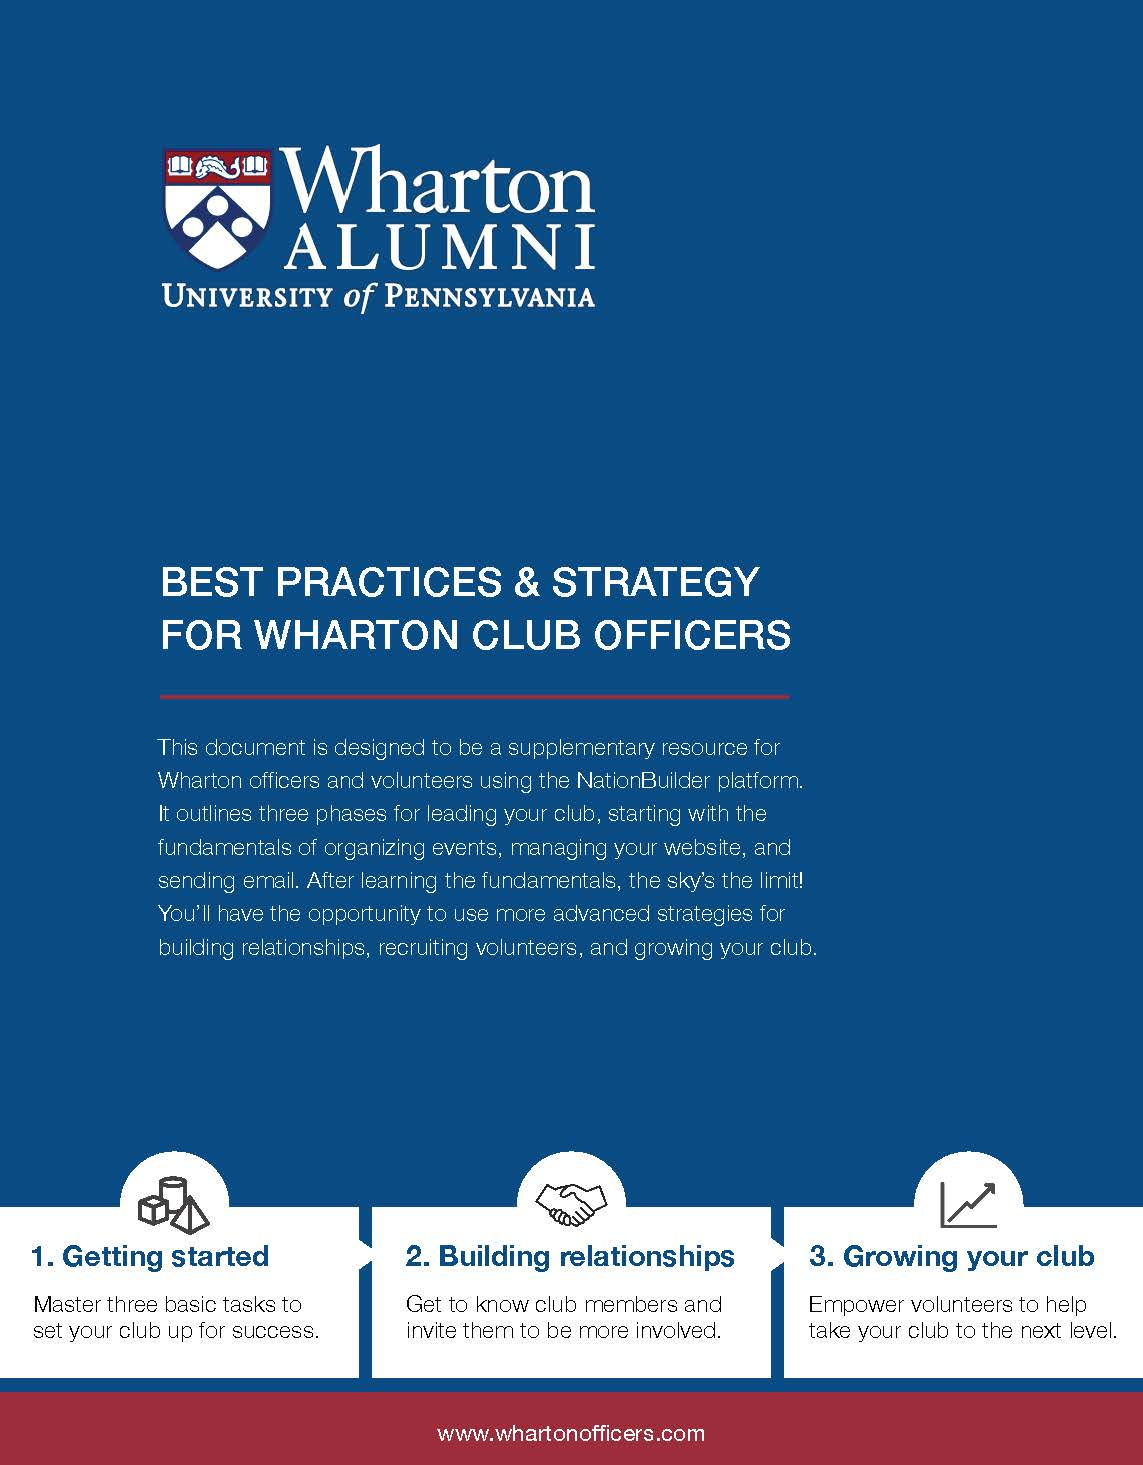 Strategy_for_Wharton_Club_Officers_Page_1.jpg